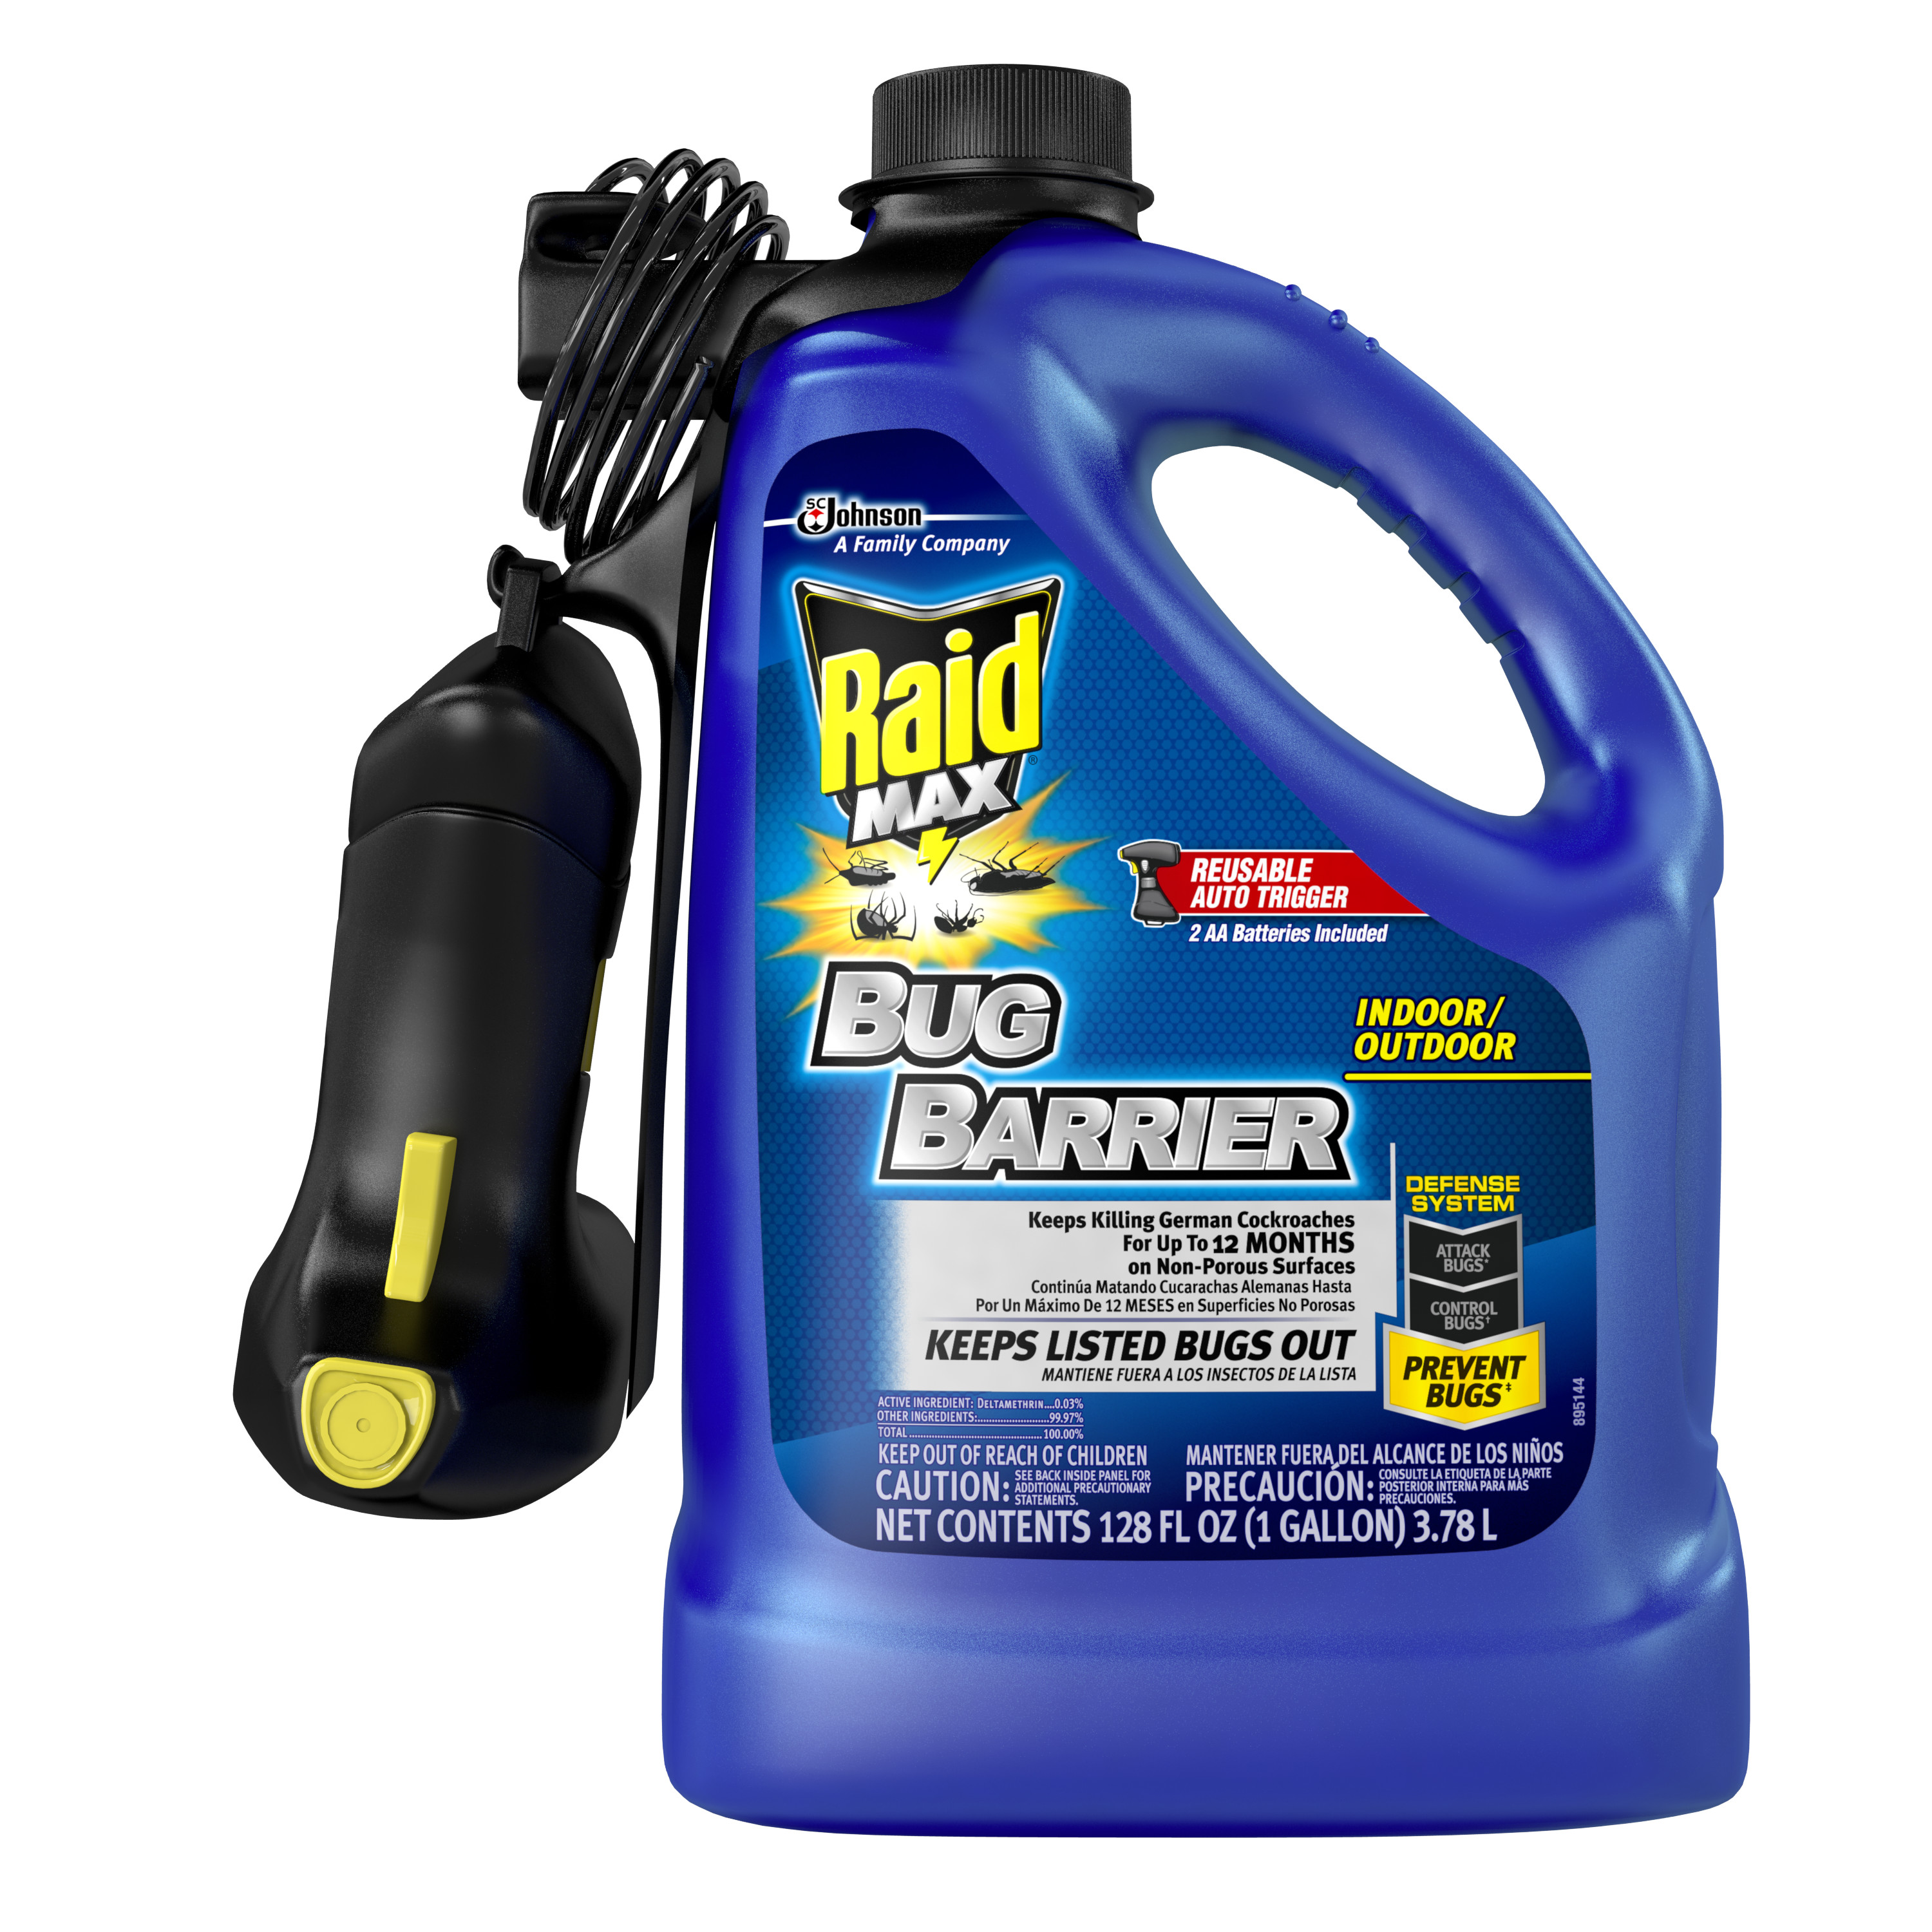 Raid Max Bug Barrier Trigger Starter Kit, 1 Gallon